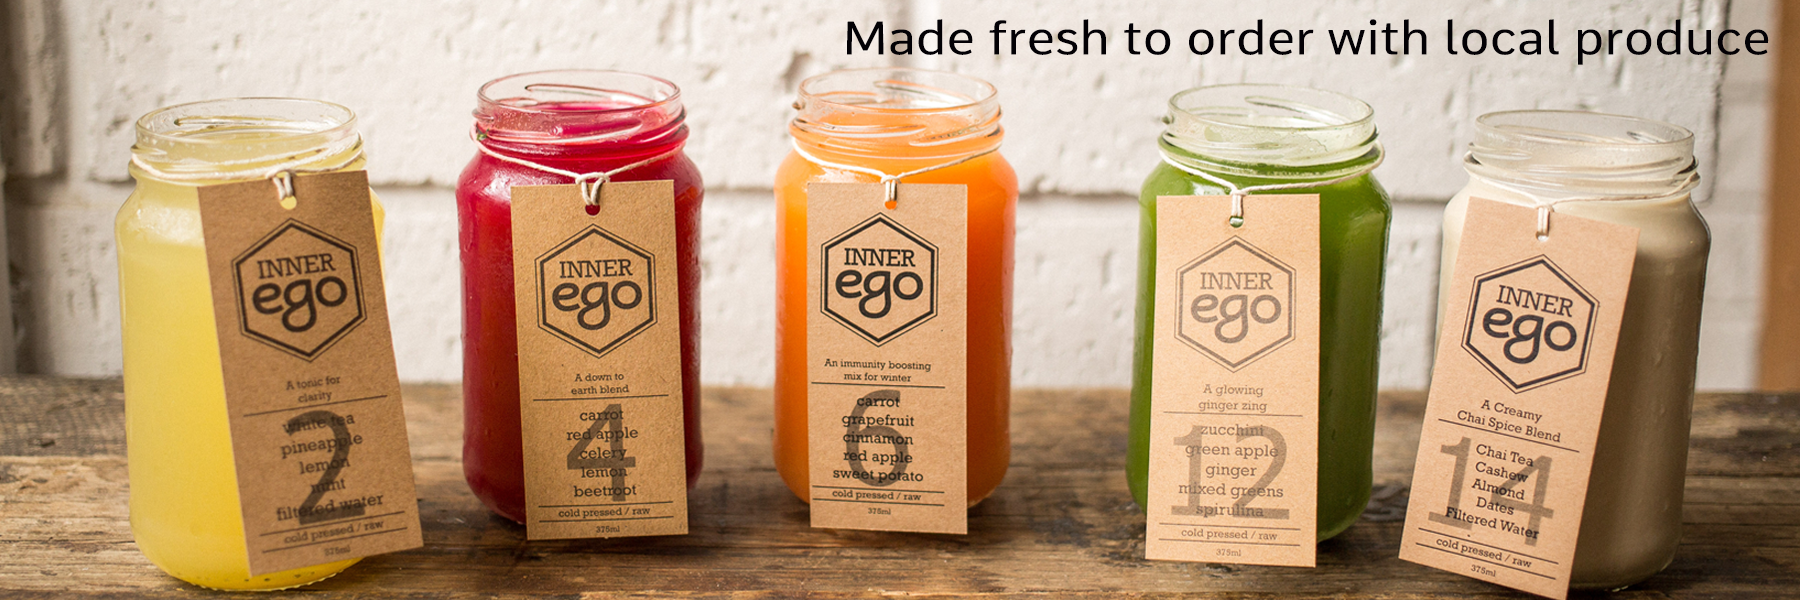 Inner Ego Cold Press - Pressed Juice Cleanse Perth